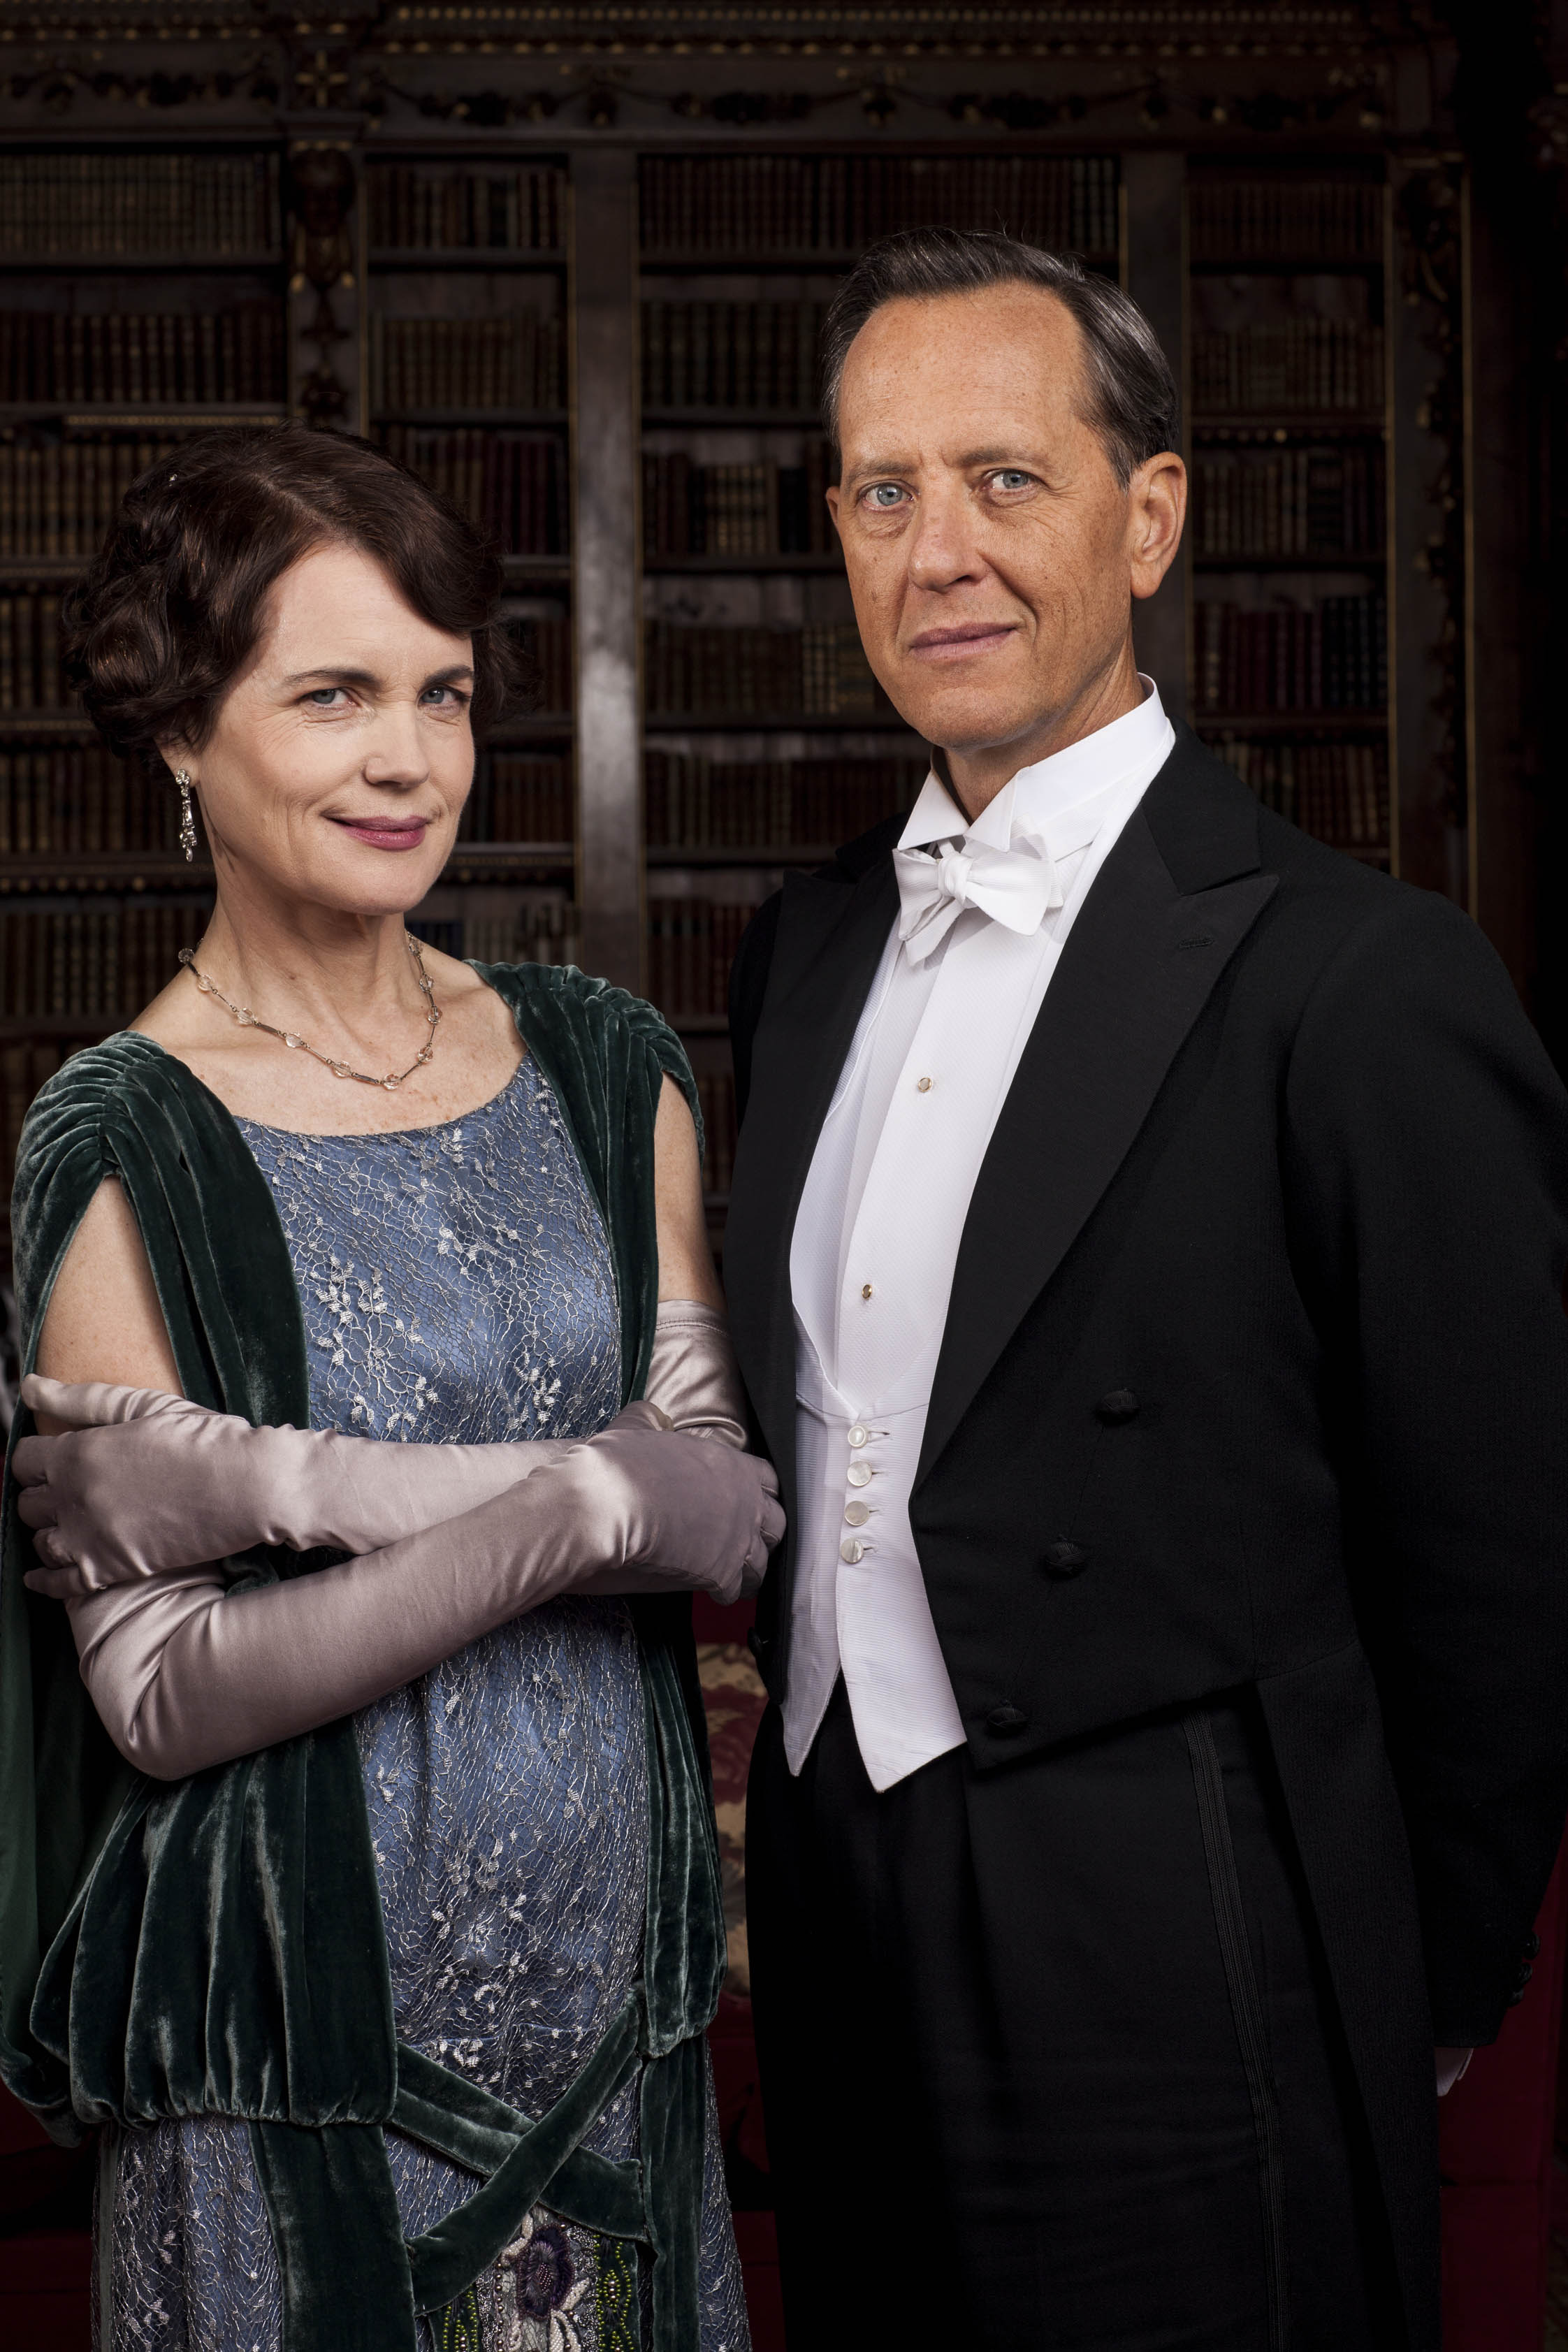 Downton Abbey season 5: The tricky love lives of the Lady Mary and the rest of the Downton gang